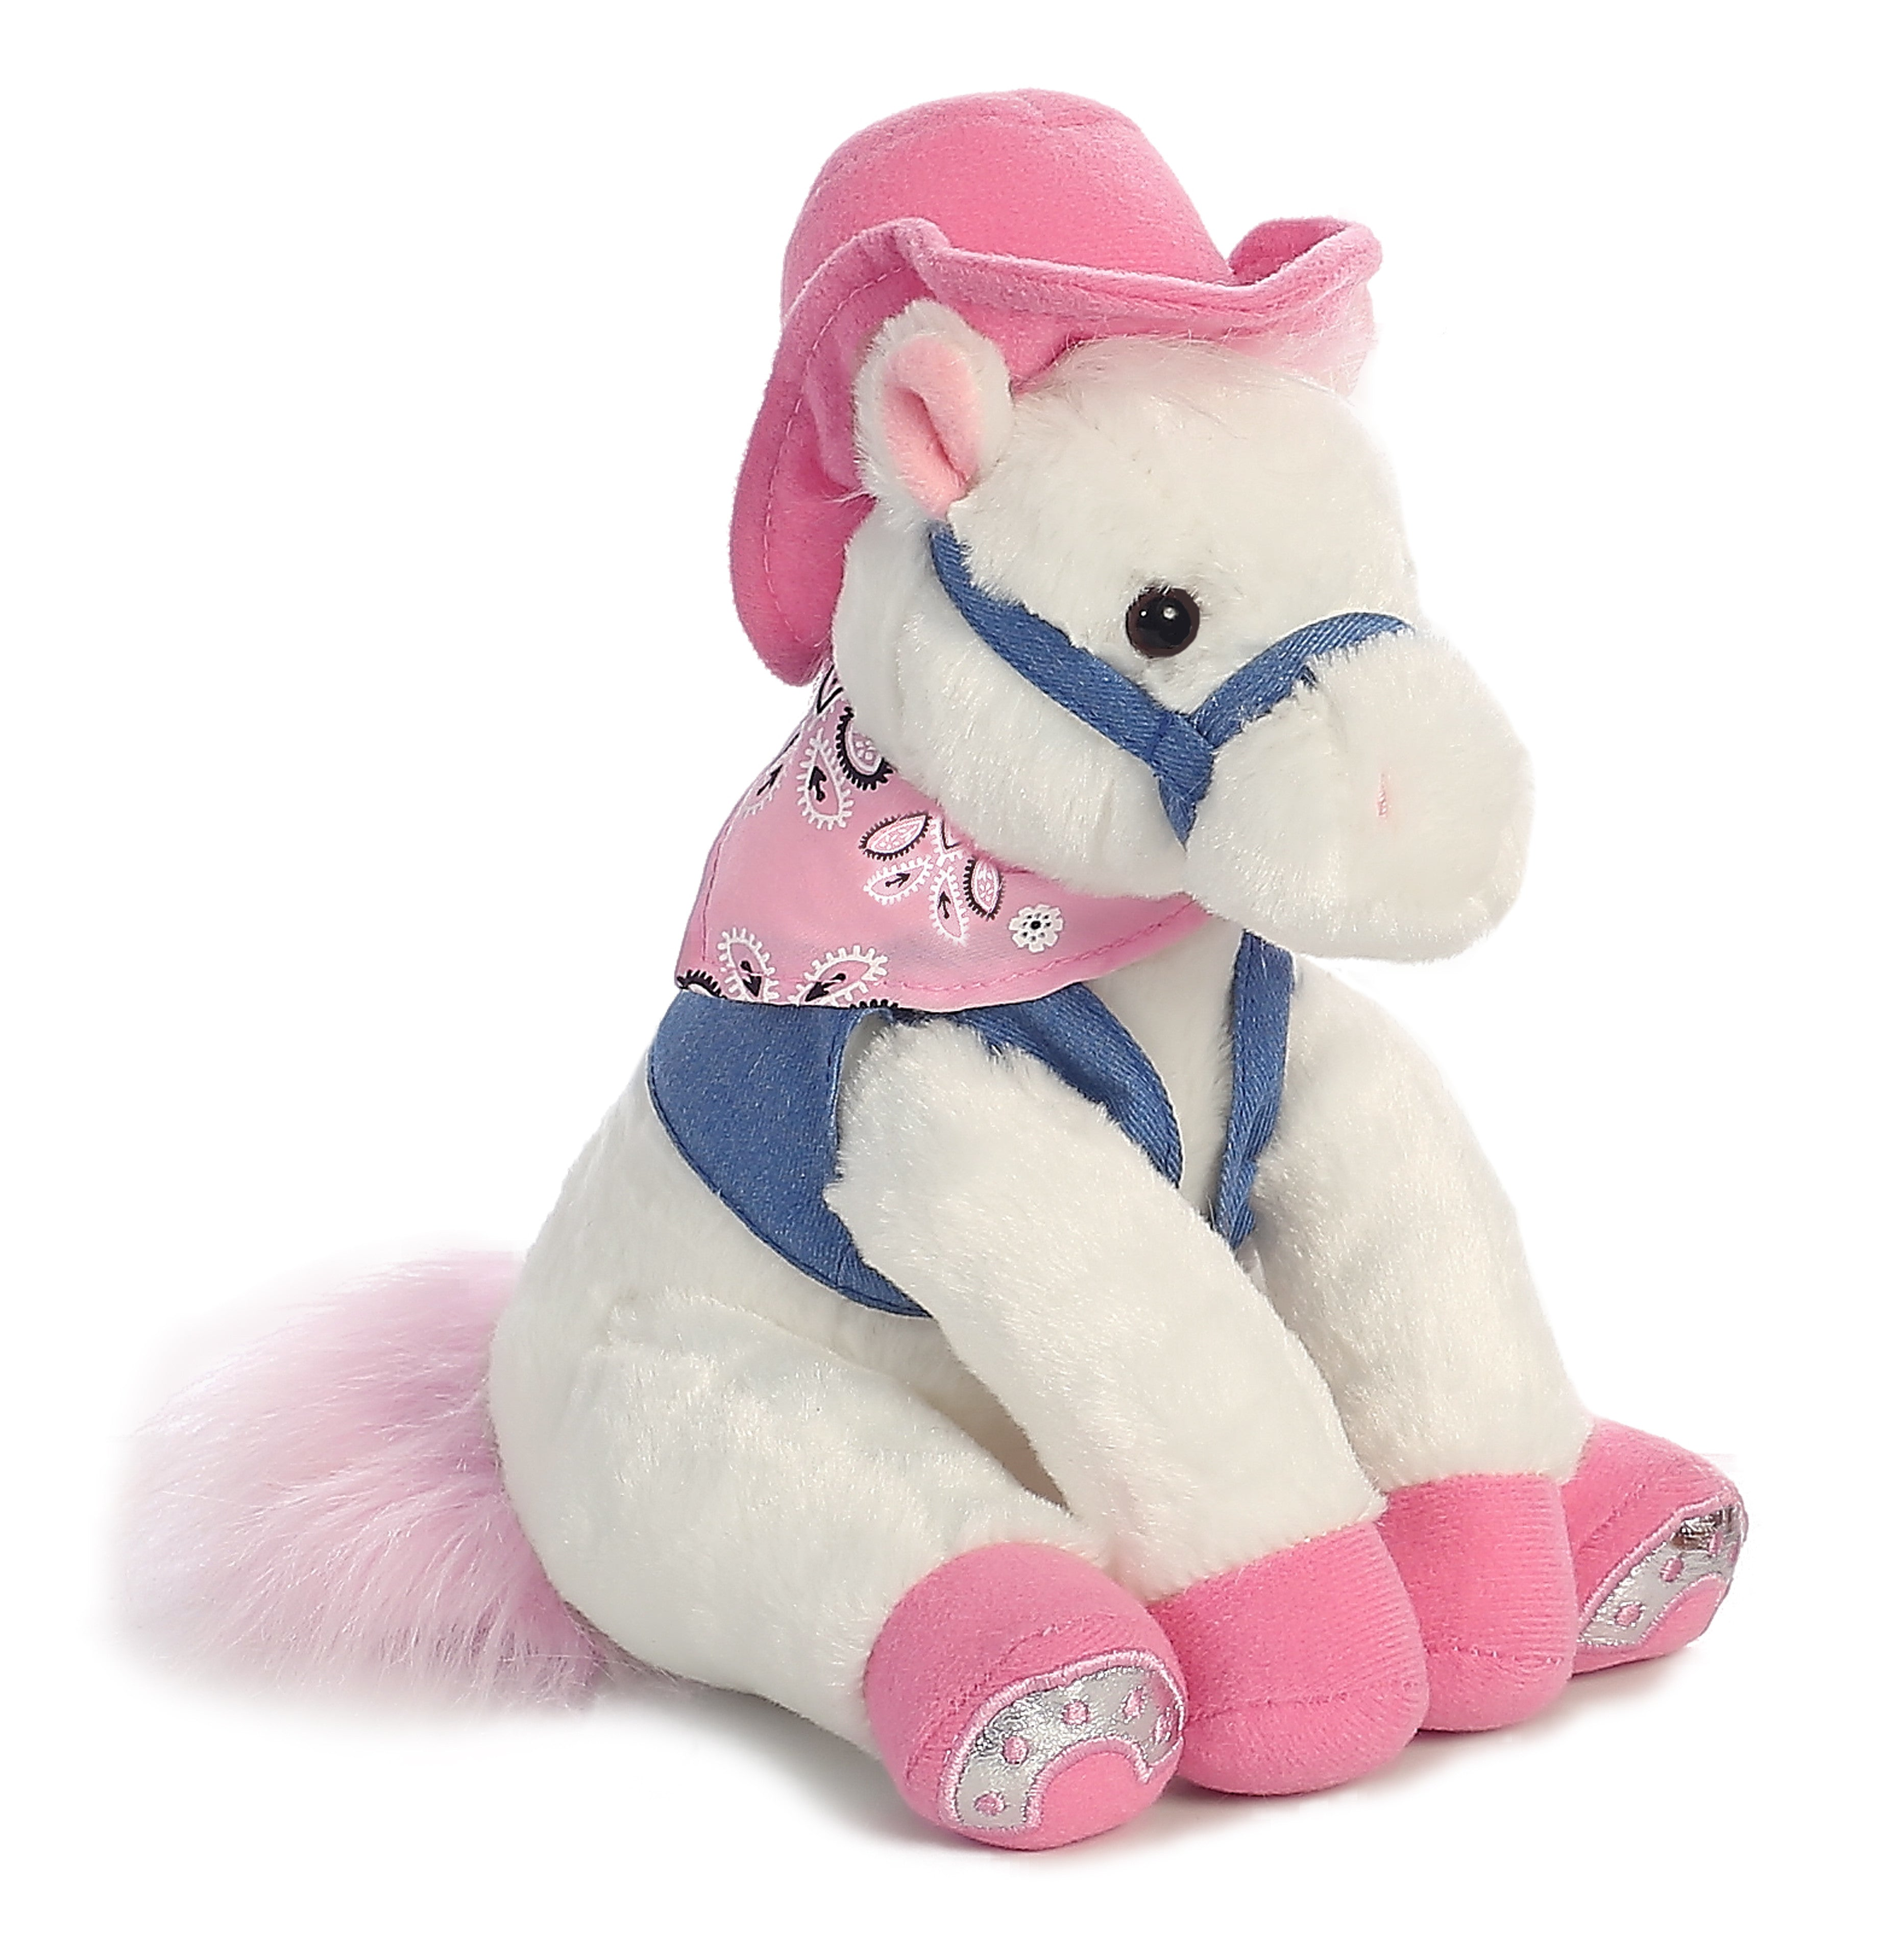 Little pony white with pink hat